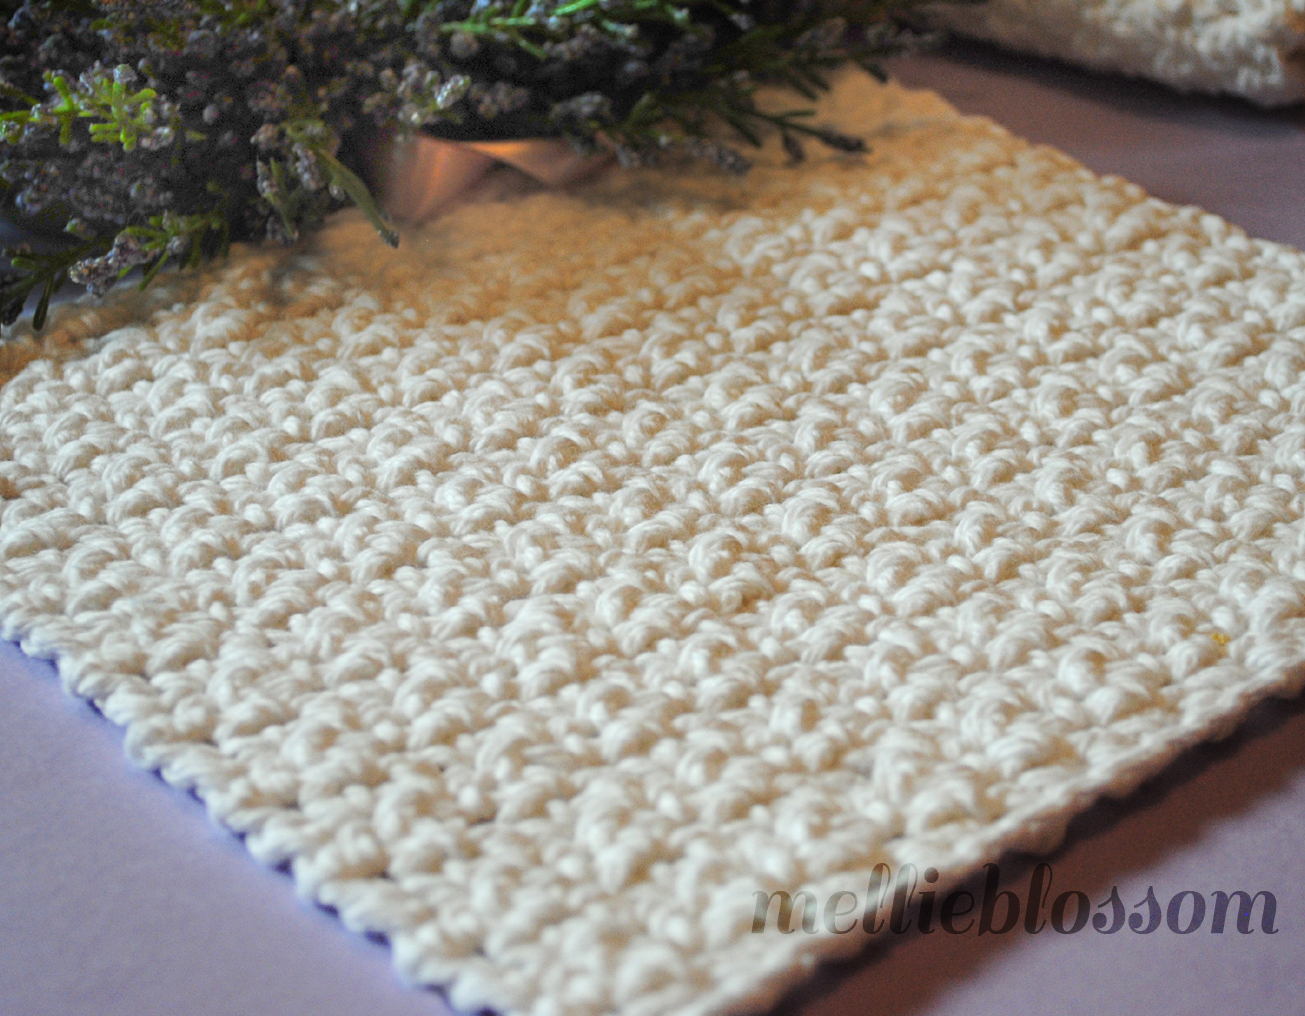 Crochet Patterns Easy Free Beginners : Free Easy Crochet Dishcloth Pattern - mellie blossom